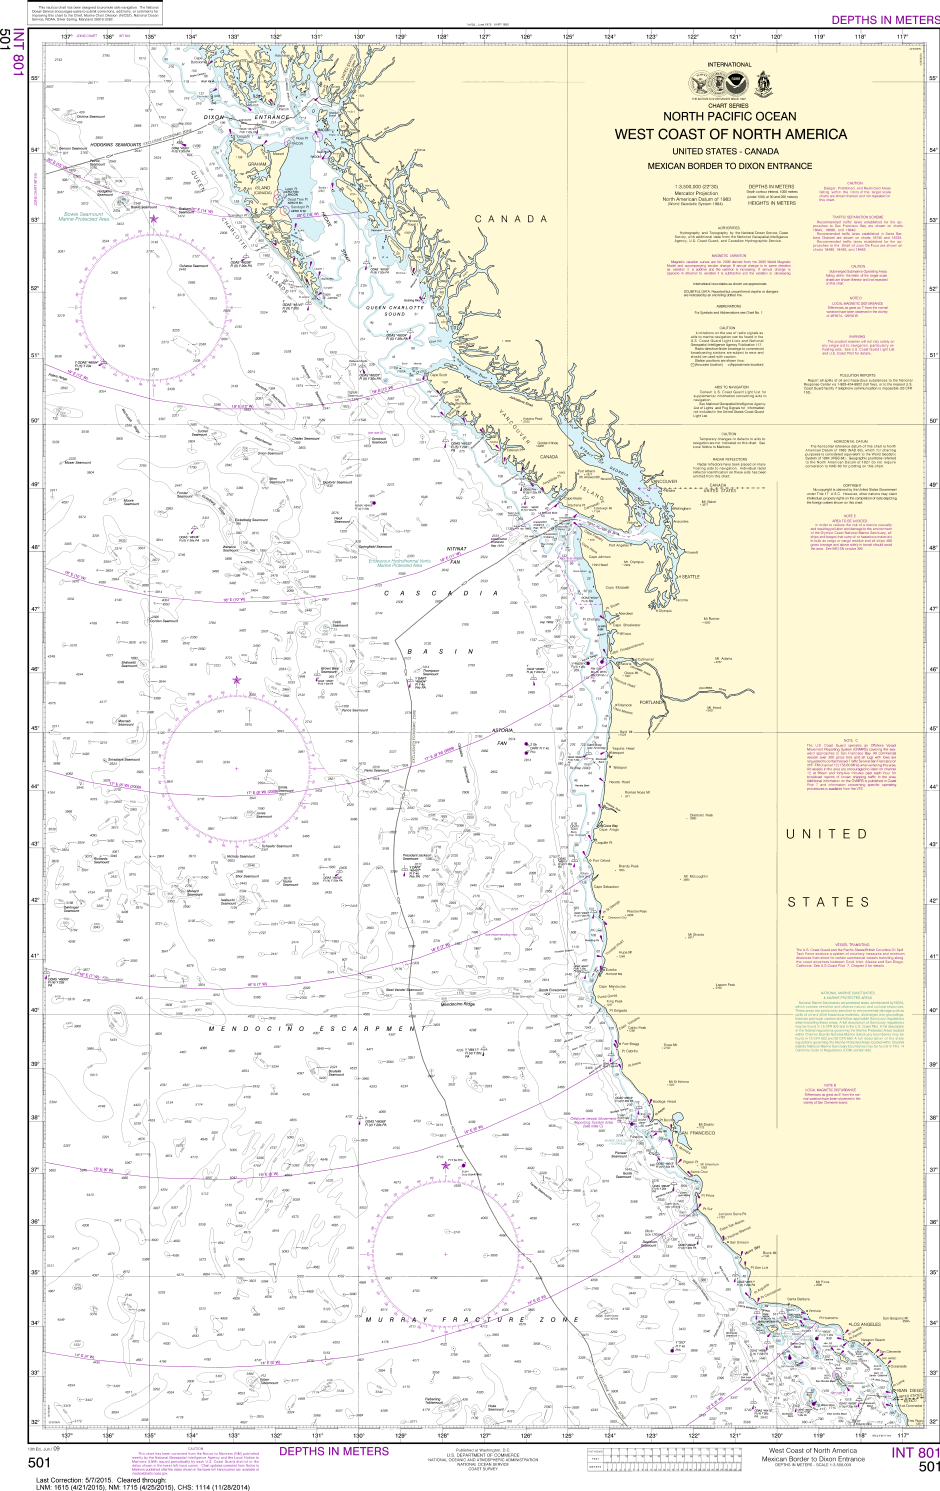 Noaa Chart 501 North Pacific Ocean West Coast Of North America - Pacific-ocean-us-map